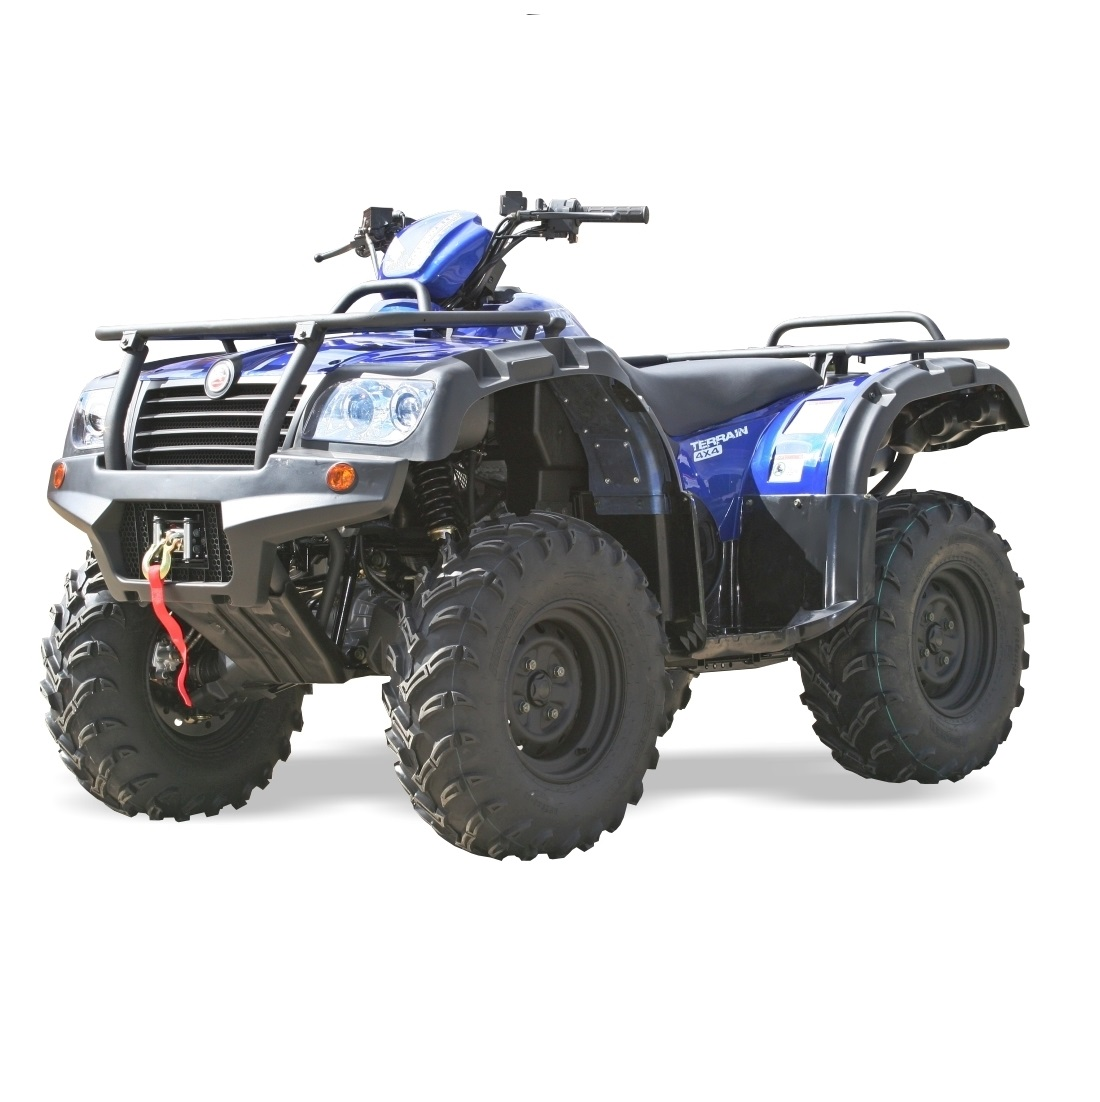 QUADZILLA-TERRAIN-500 Road Legal Quad